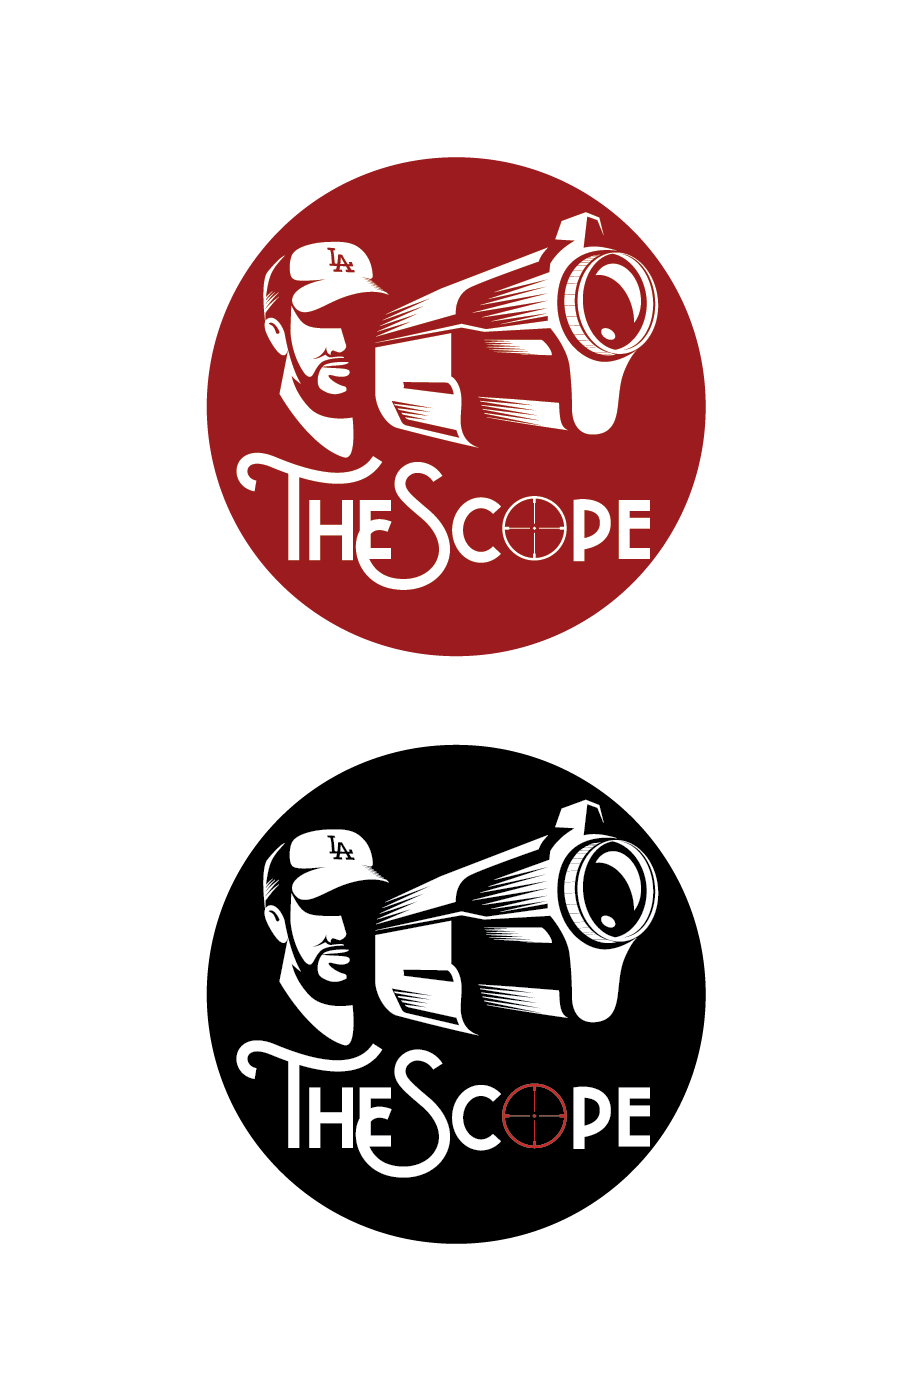 Logo design for upcoming production company